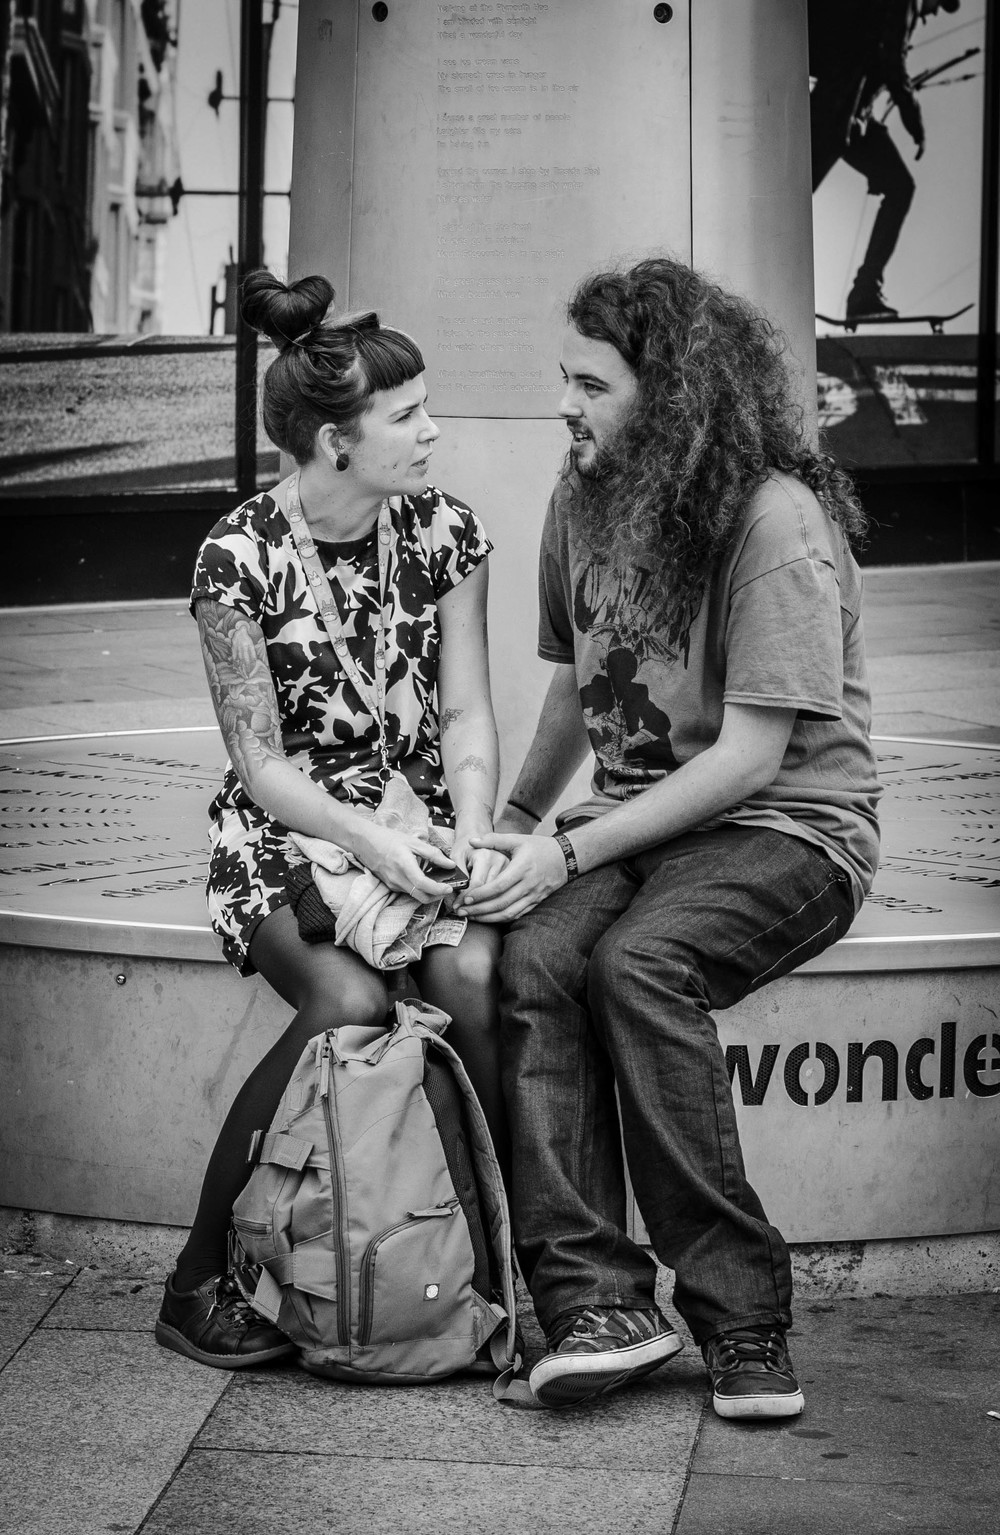 Lovers lost in conversation in Plymouth, UK taken by Bill Thornhill